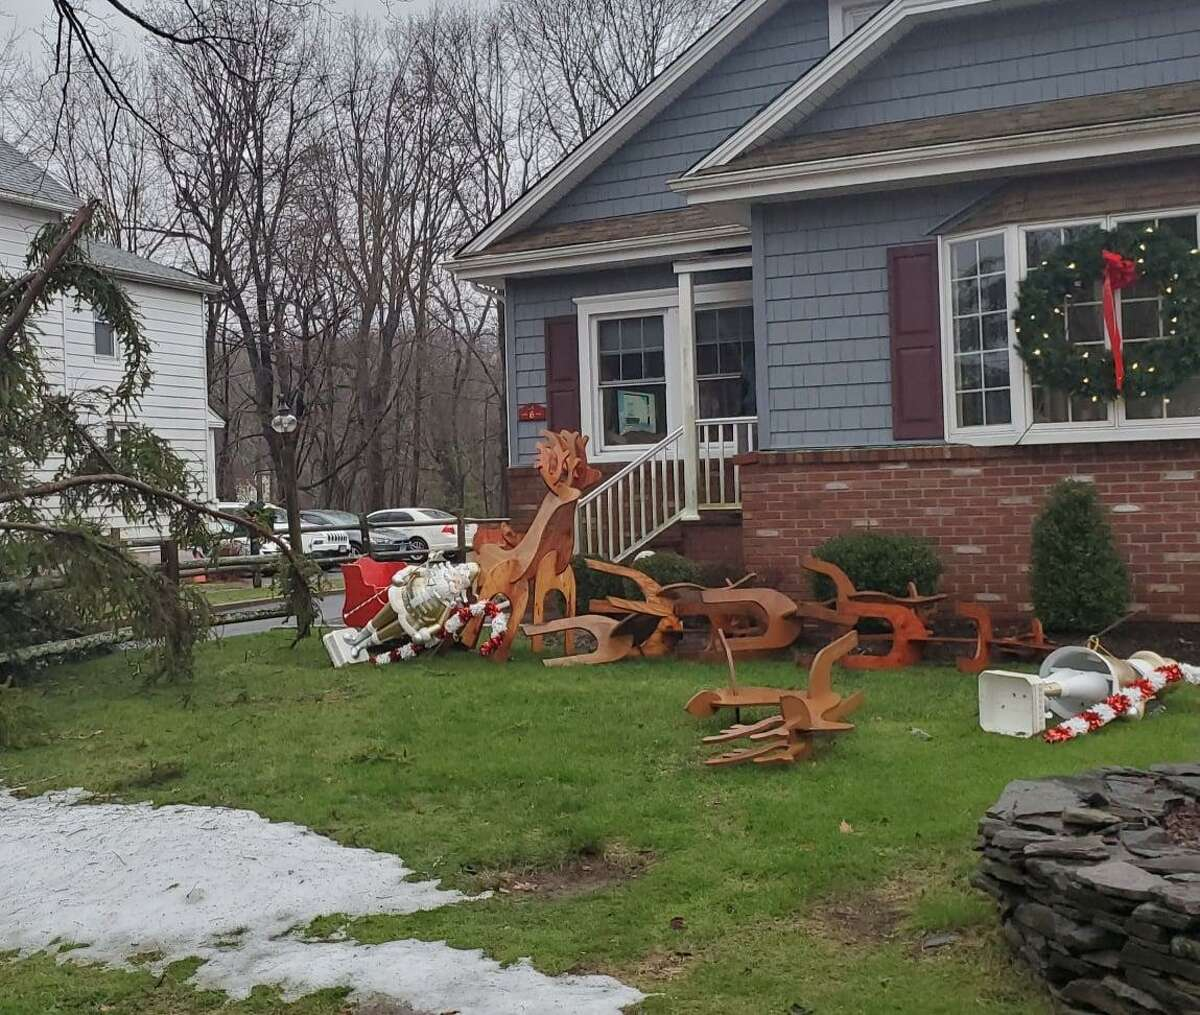 In addition to handling multiple storm-related calls Christmas Day, Danbury firefighers responded to an incident involving a rolled over Santa's sleigh.